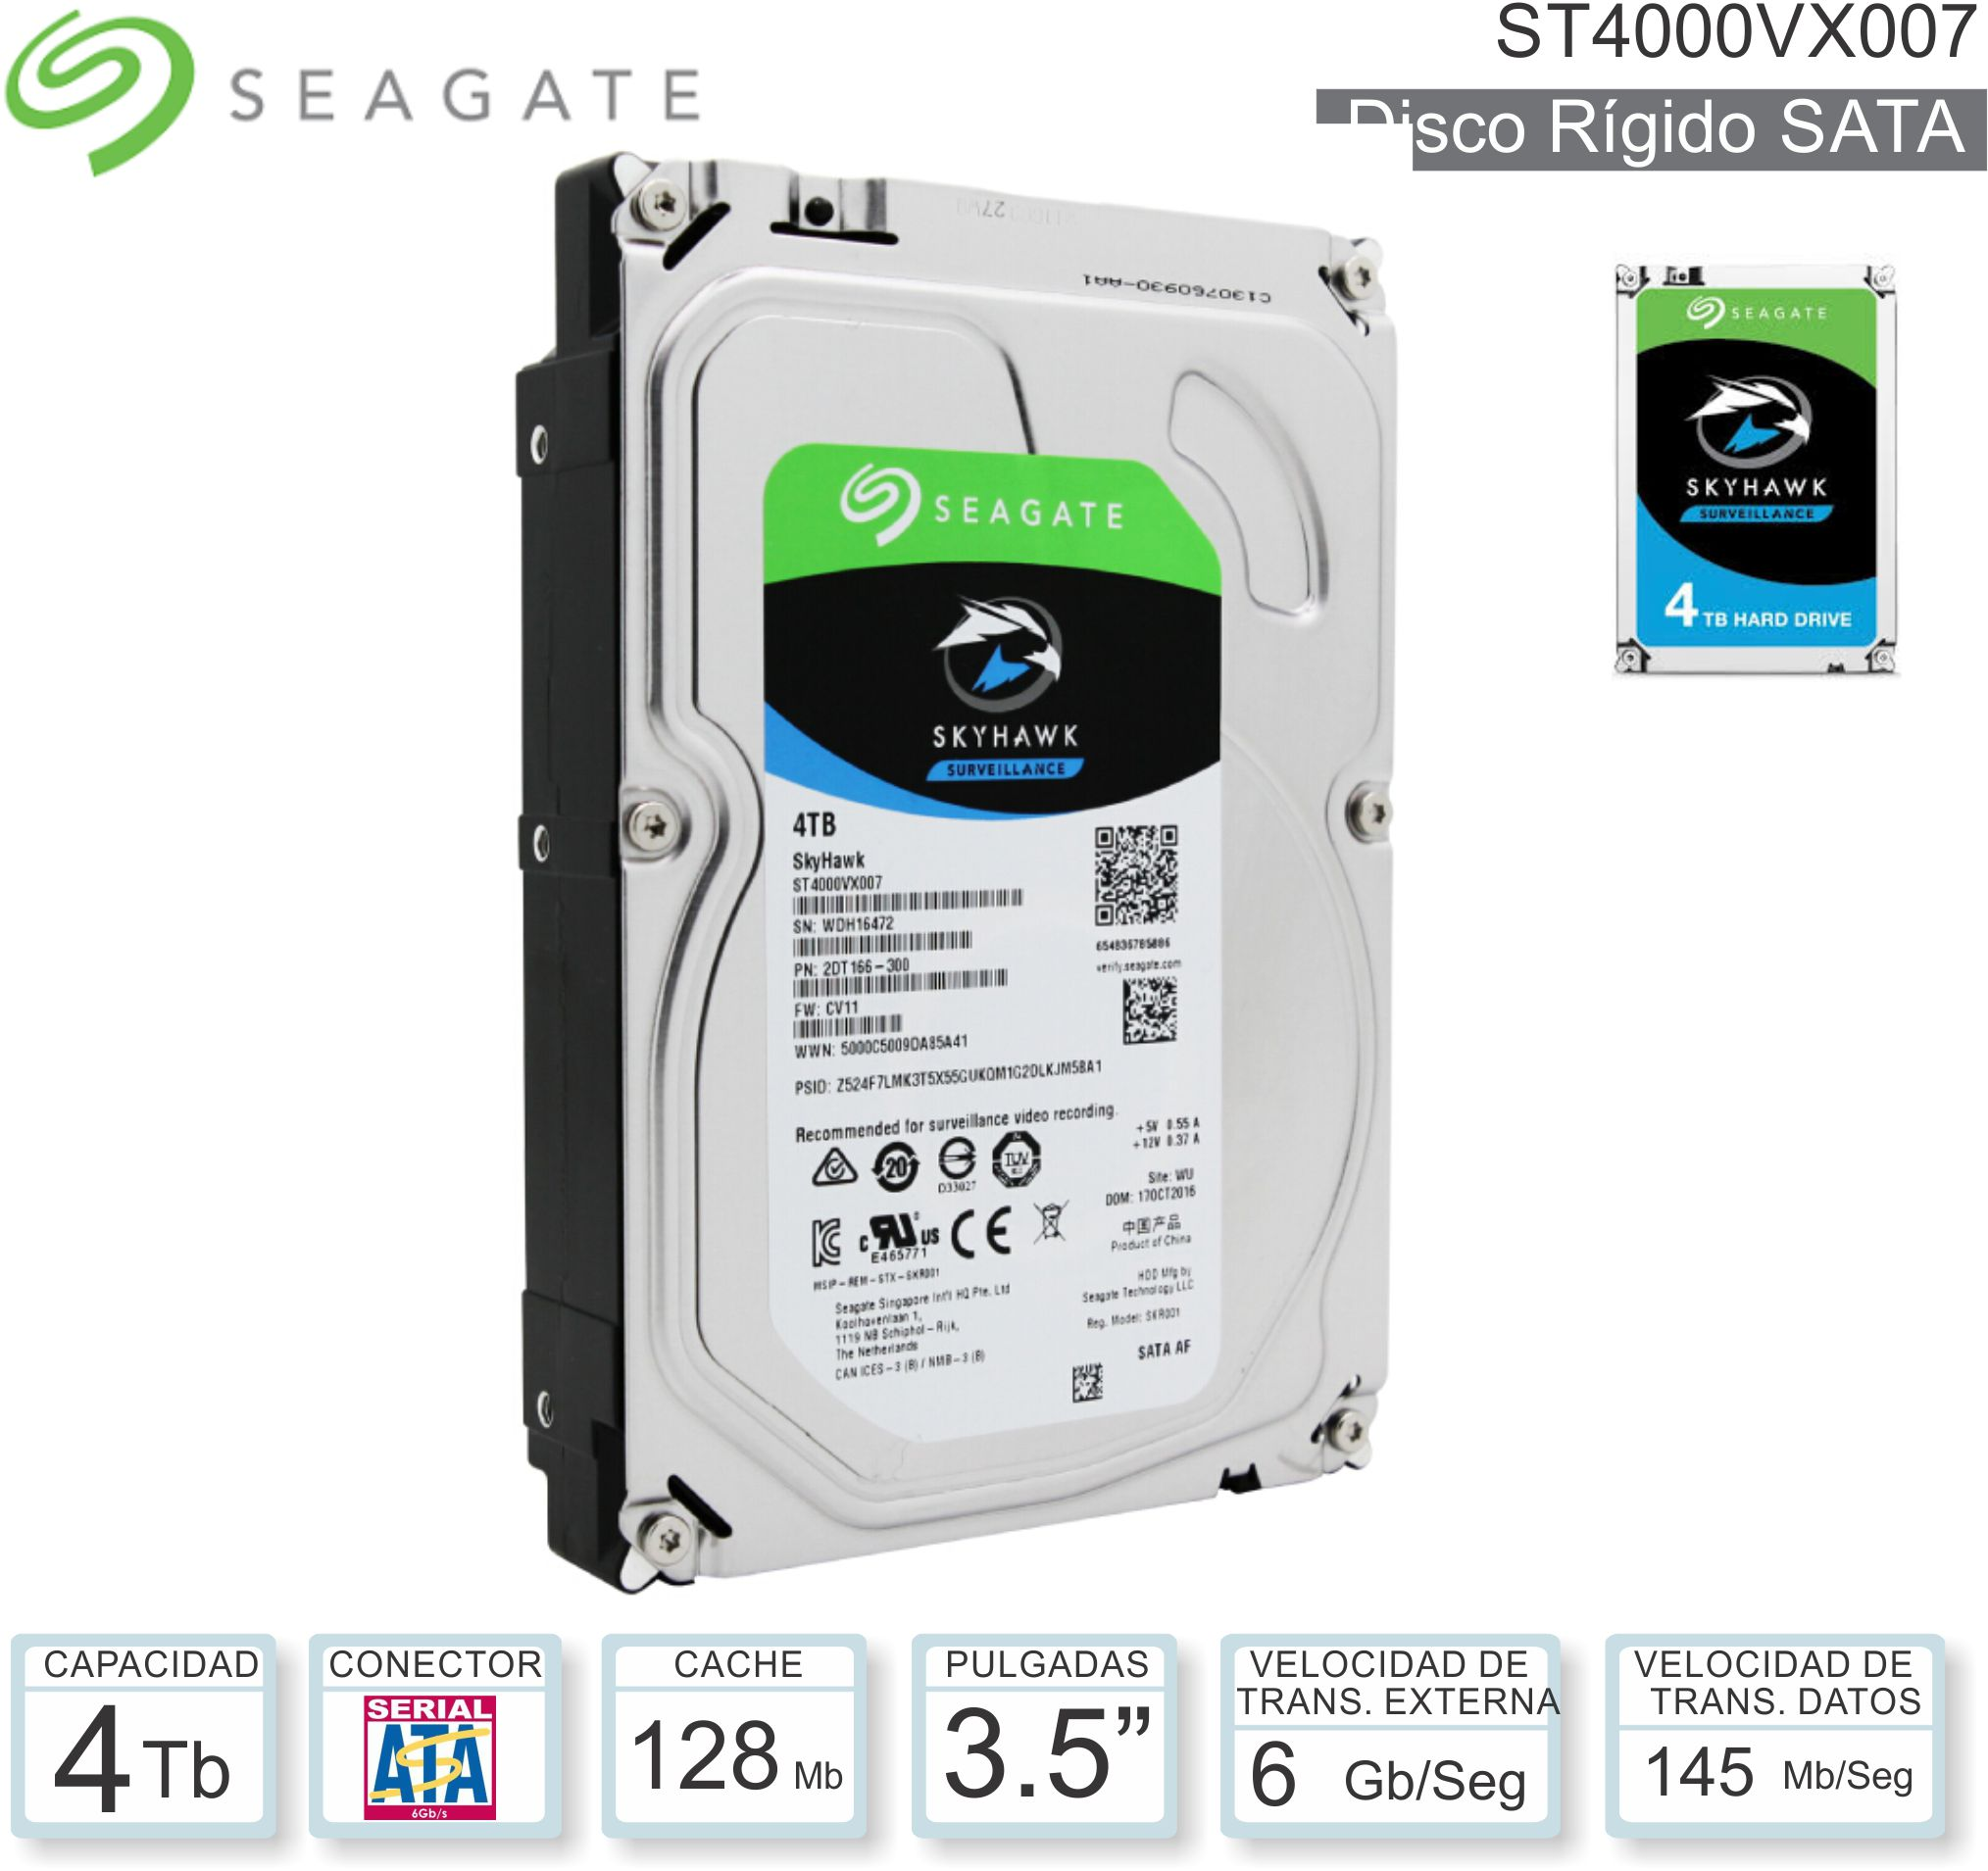 Disco Rigido 3.5 SATA 4096 Gb WD Red NAS WD40EFRX